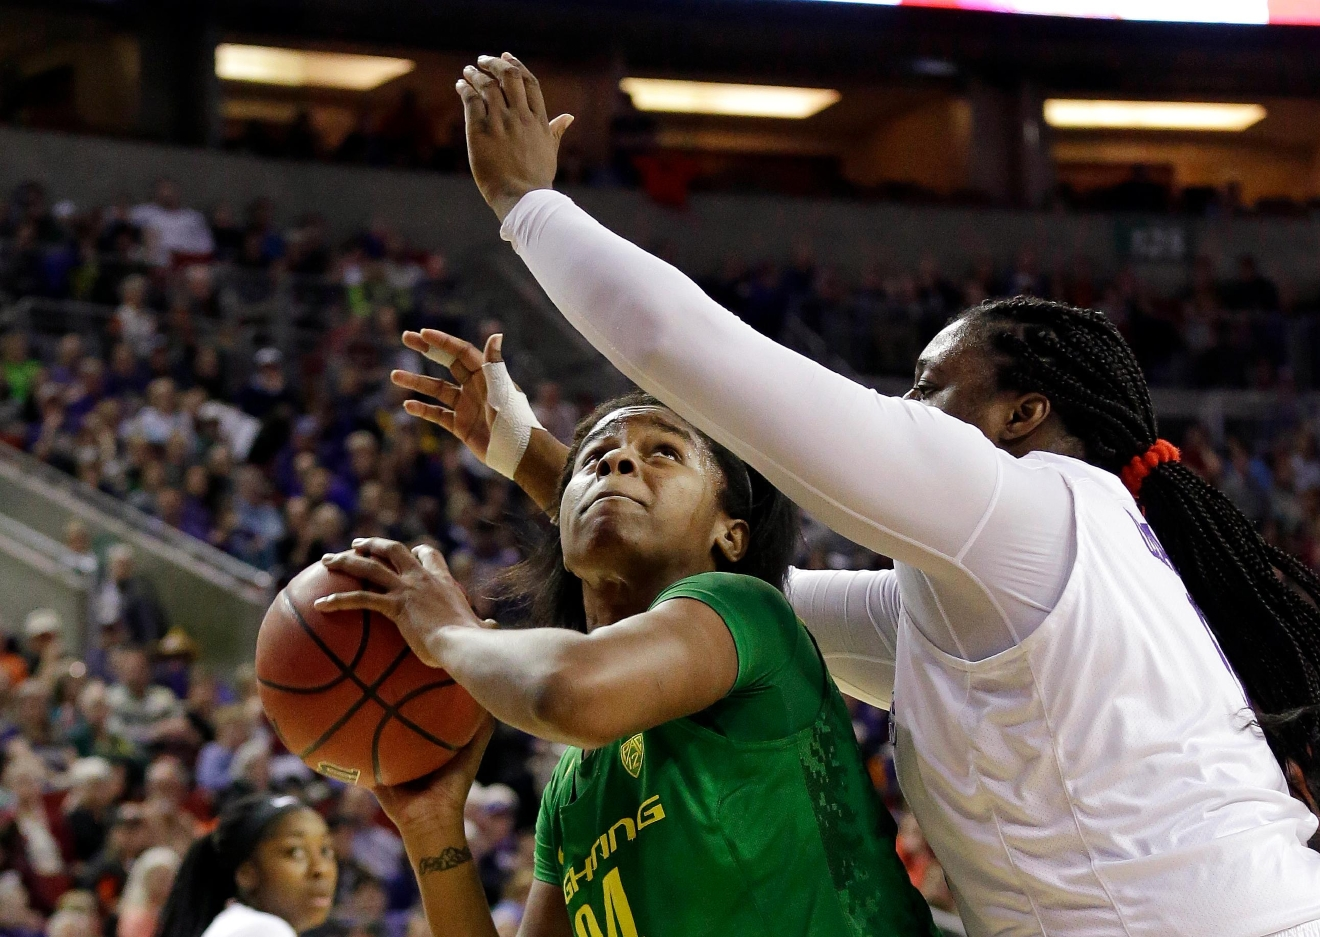 Washington's Chantel Osahor, right, guards Oregon's Ruthy Hebard as Hebard tries to shoot during the first half of an NCAA college basketball game in the Pac-12 Conference tournament, Friday, March 3, 2017, in Seattle. (AP Photo/Elaine Thompson)